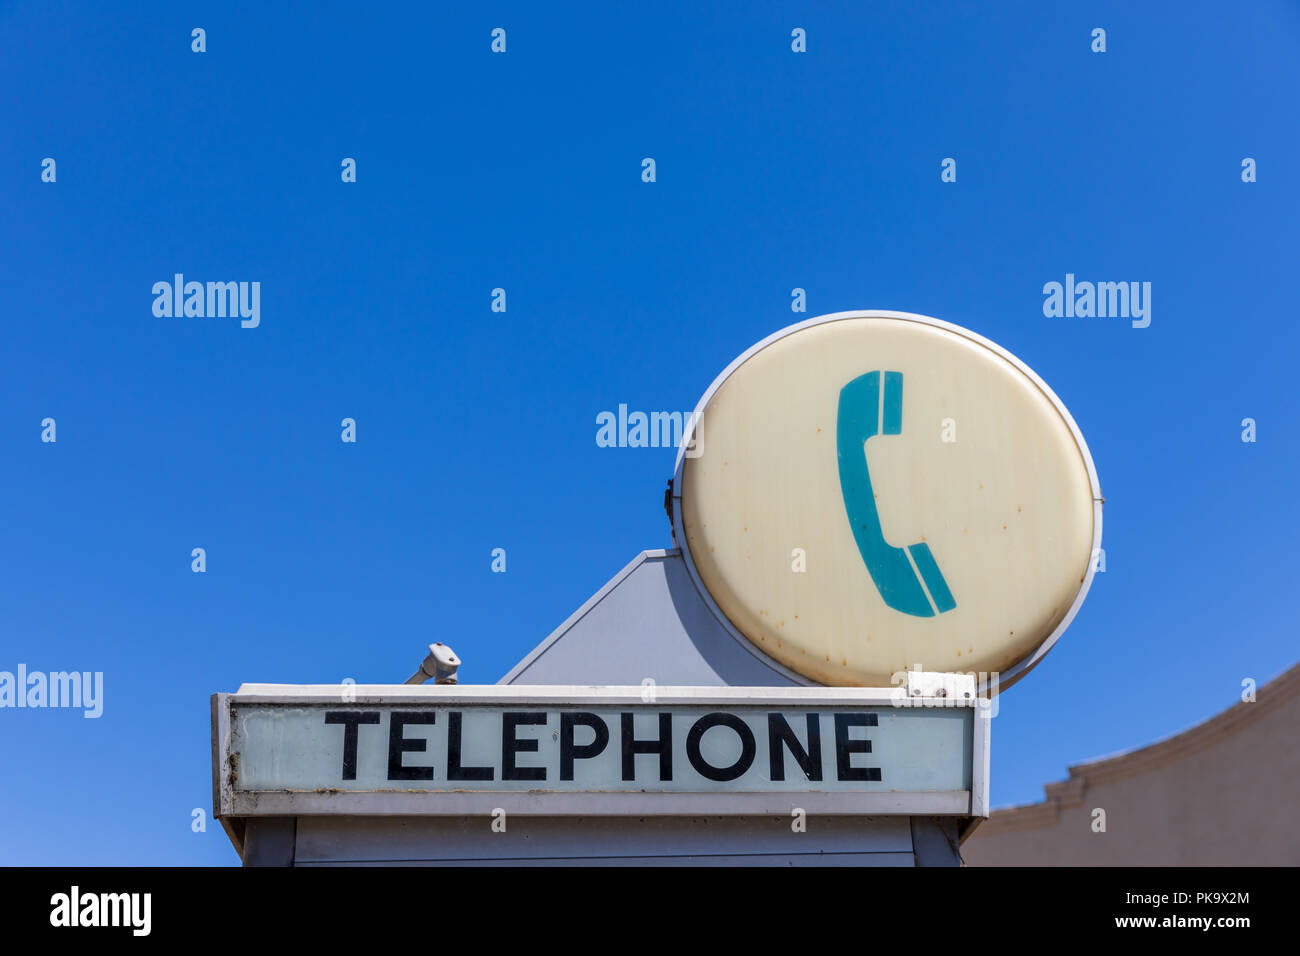 Telephone sign on phone booth; California, USA Stock Photo